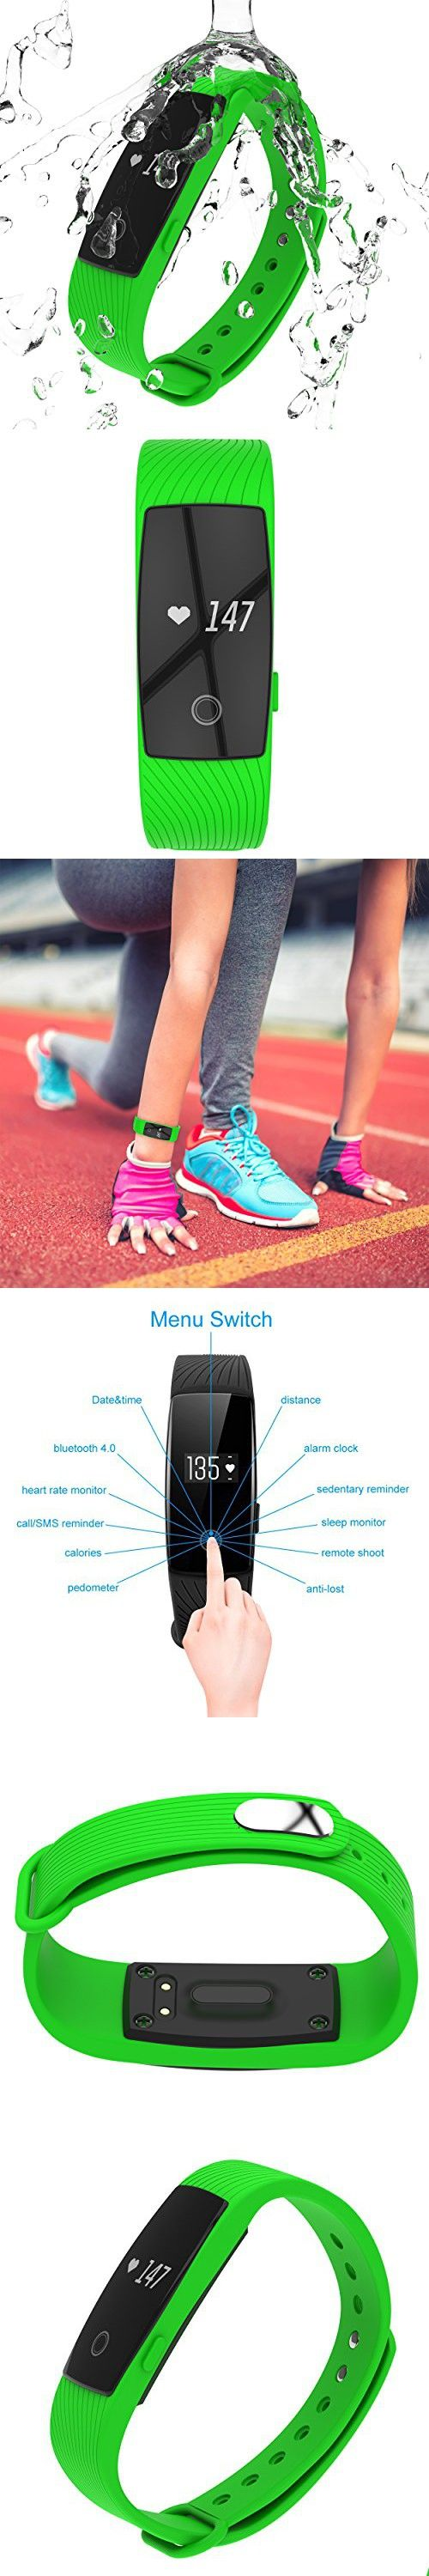 3STN Fitness Activity Tracker Bracelet with Heart Rate Monitor - Personal Armband with App, Bluetooth 4.0, Sleep Tracker, Waterproof, Pedometer, Reminder - iOS & Android - Women, Men, Kids (Green)